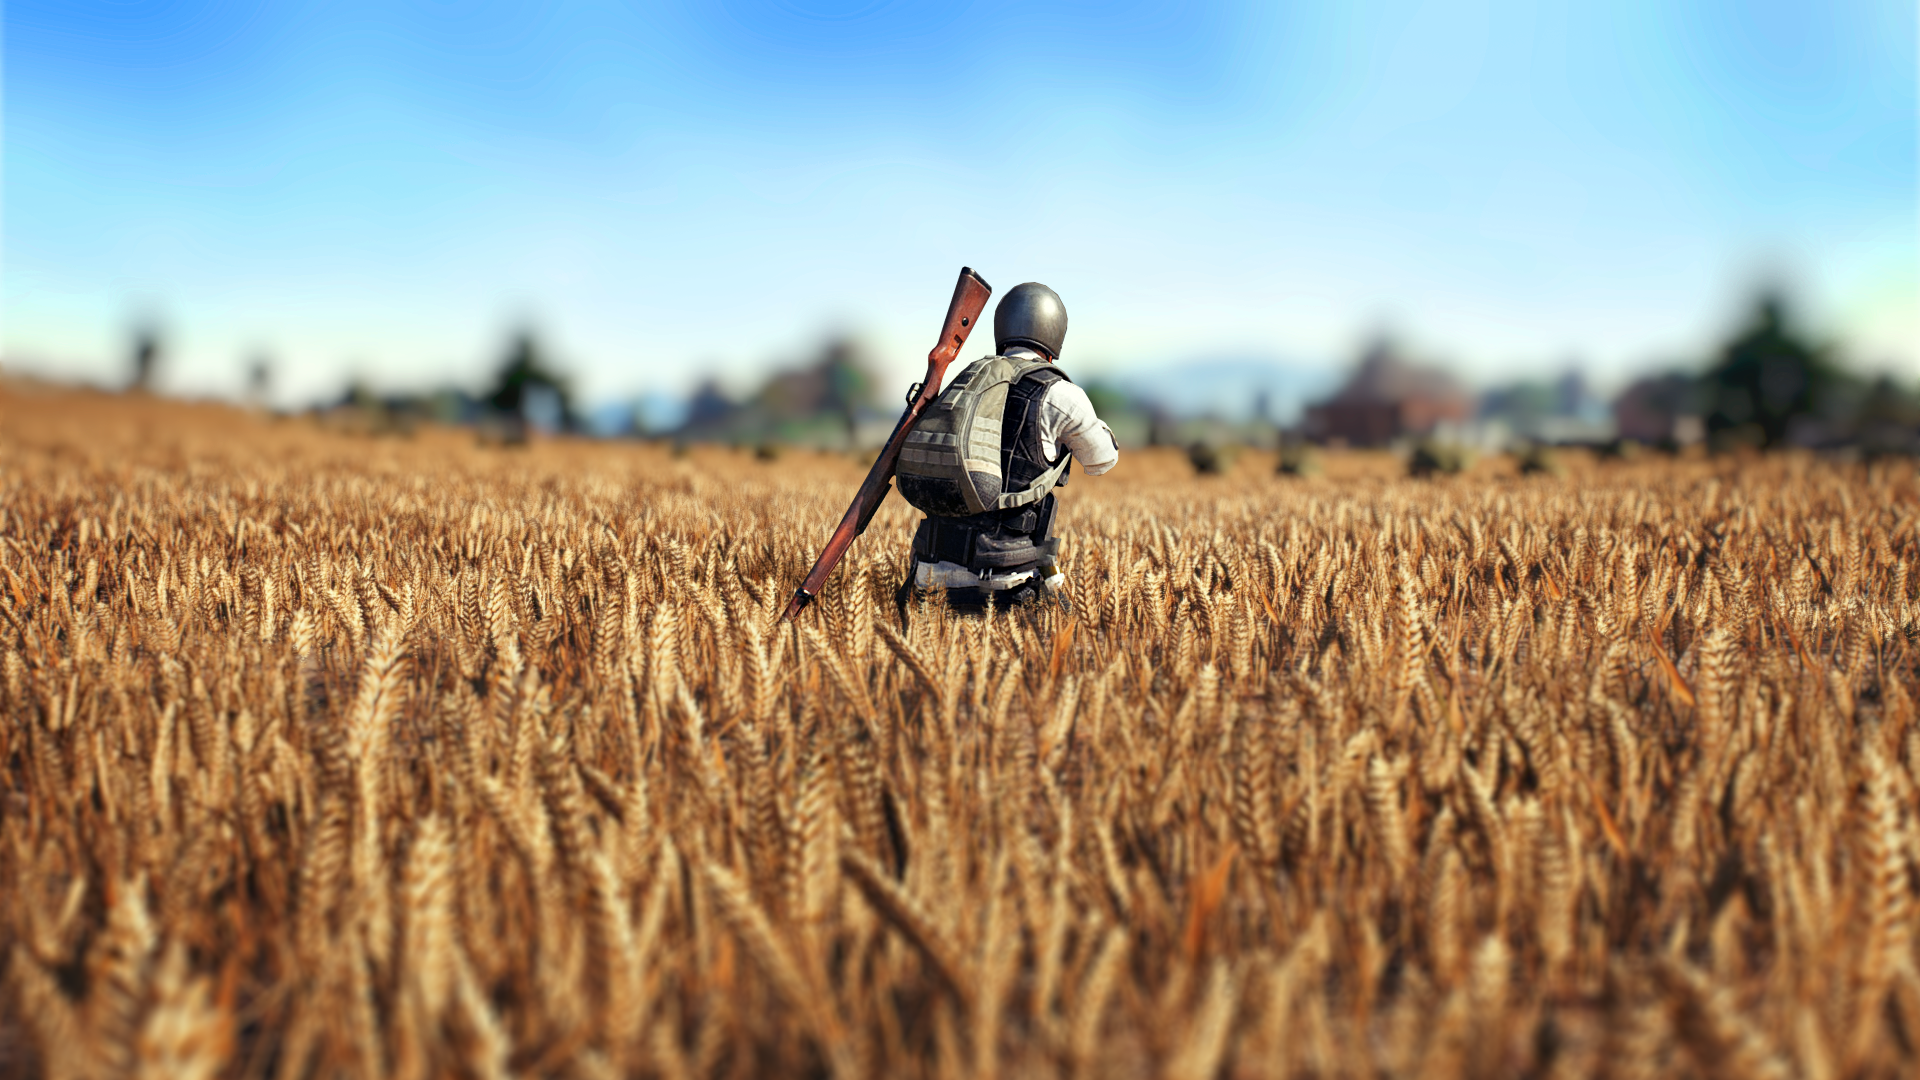 wp2462417 pubg 4k wallpapers - Player Unknown's Battlegrounds (PUBG) 4K - Pubg wallpaper phone, pubg wallpaper iphone, pubg wallpaper 1920x1080 hd, pubg hd wallpapers, pubg 4k wallpapers, Player Unknown's Battlegrounds 4k wallpapers